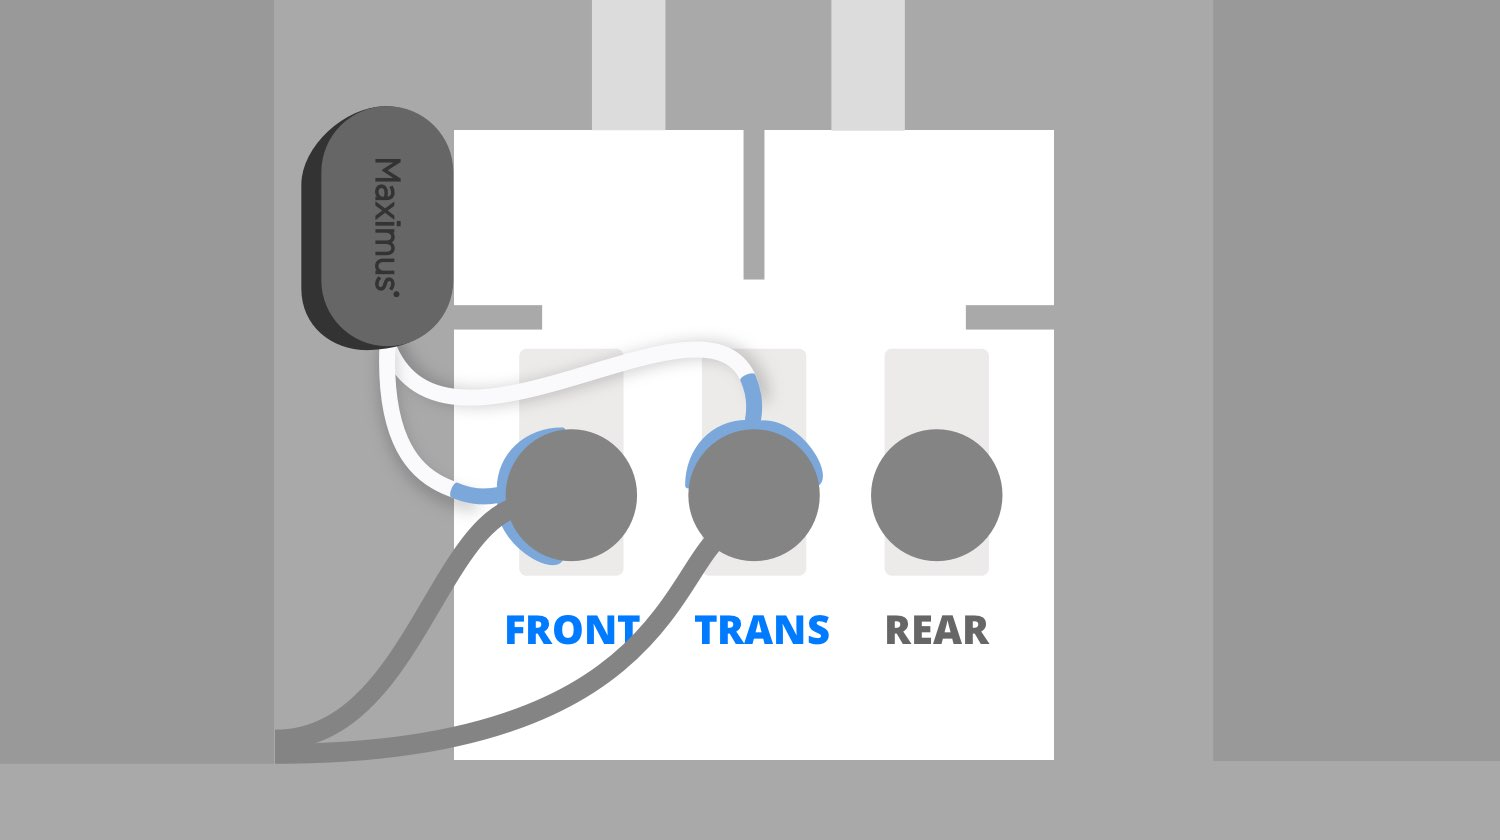 Illo__Bypass_-_Chimebox_Terminals_Front_Trans.jpg